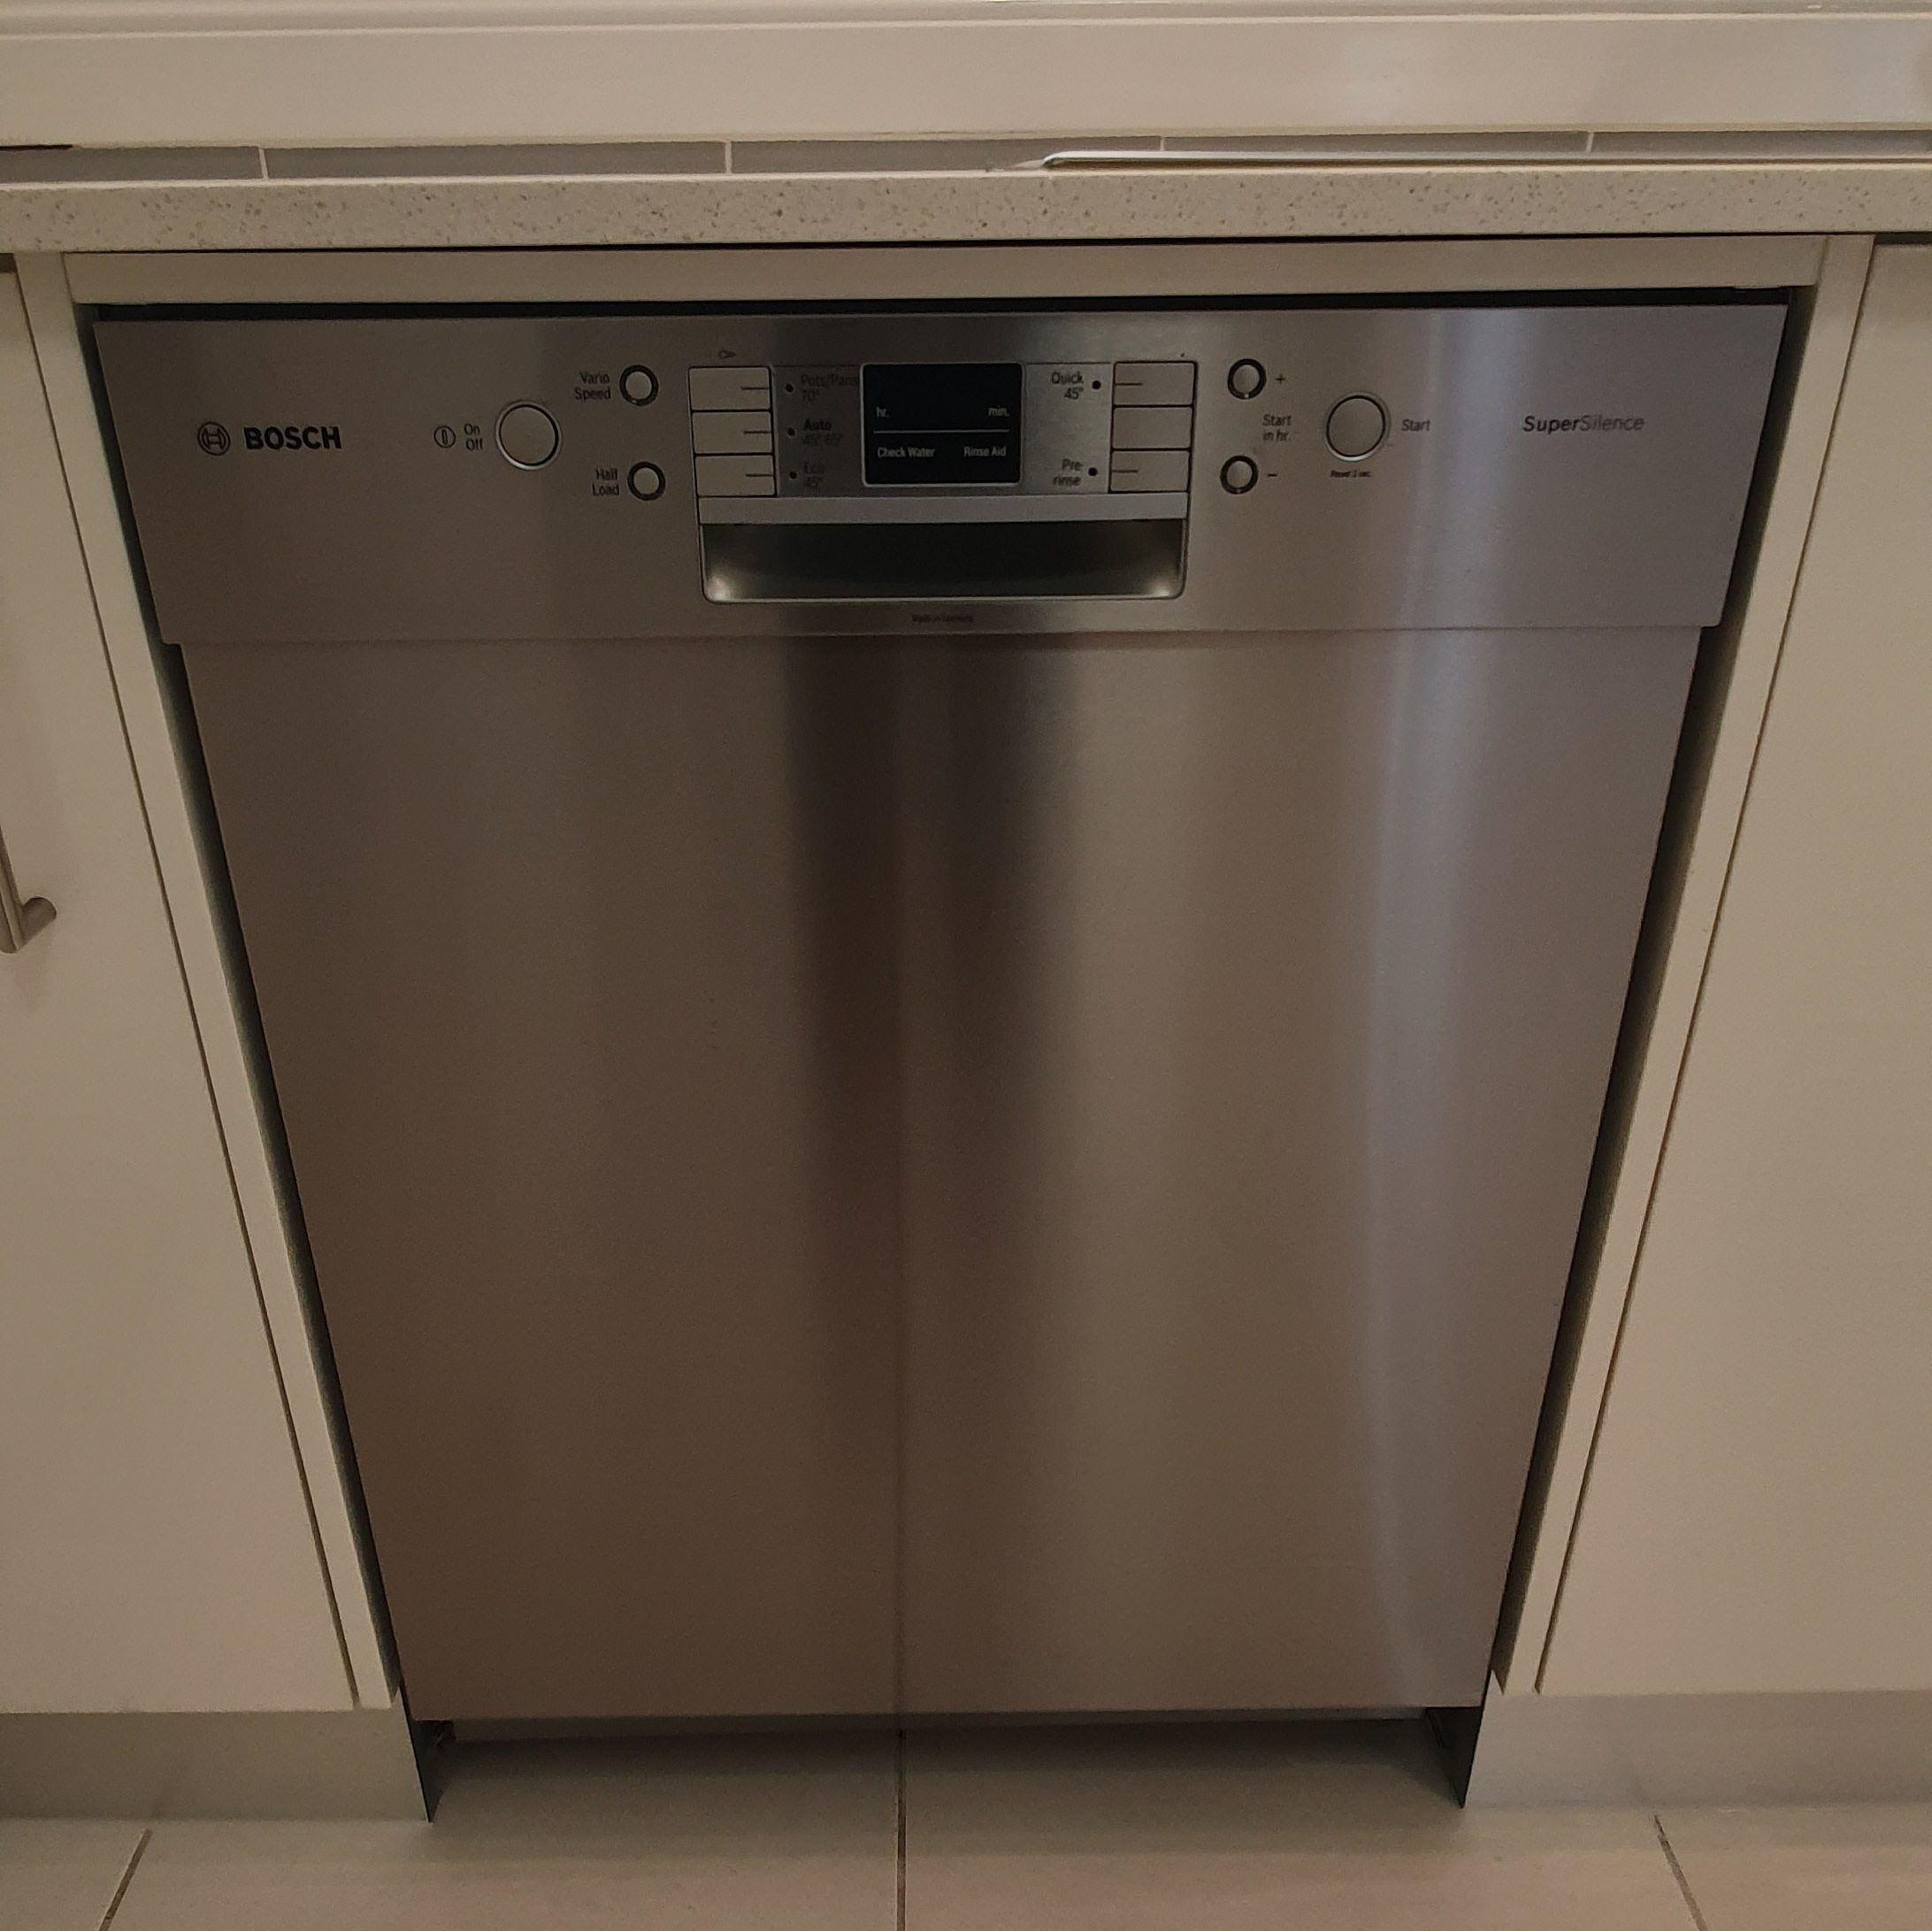 Clean Dishwasher (Appliance Cleaning)